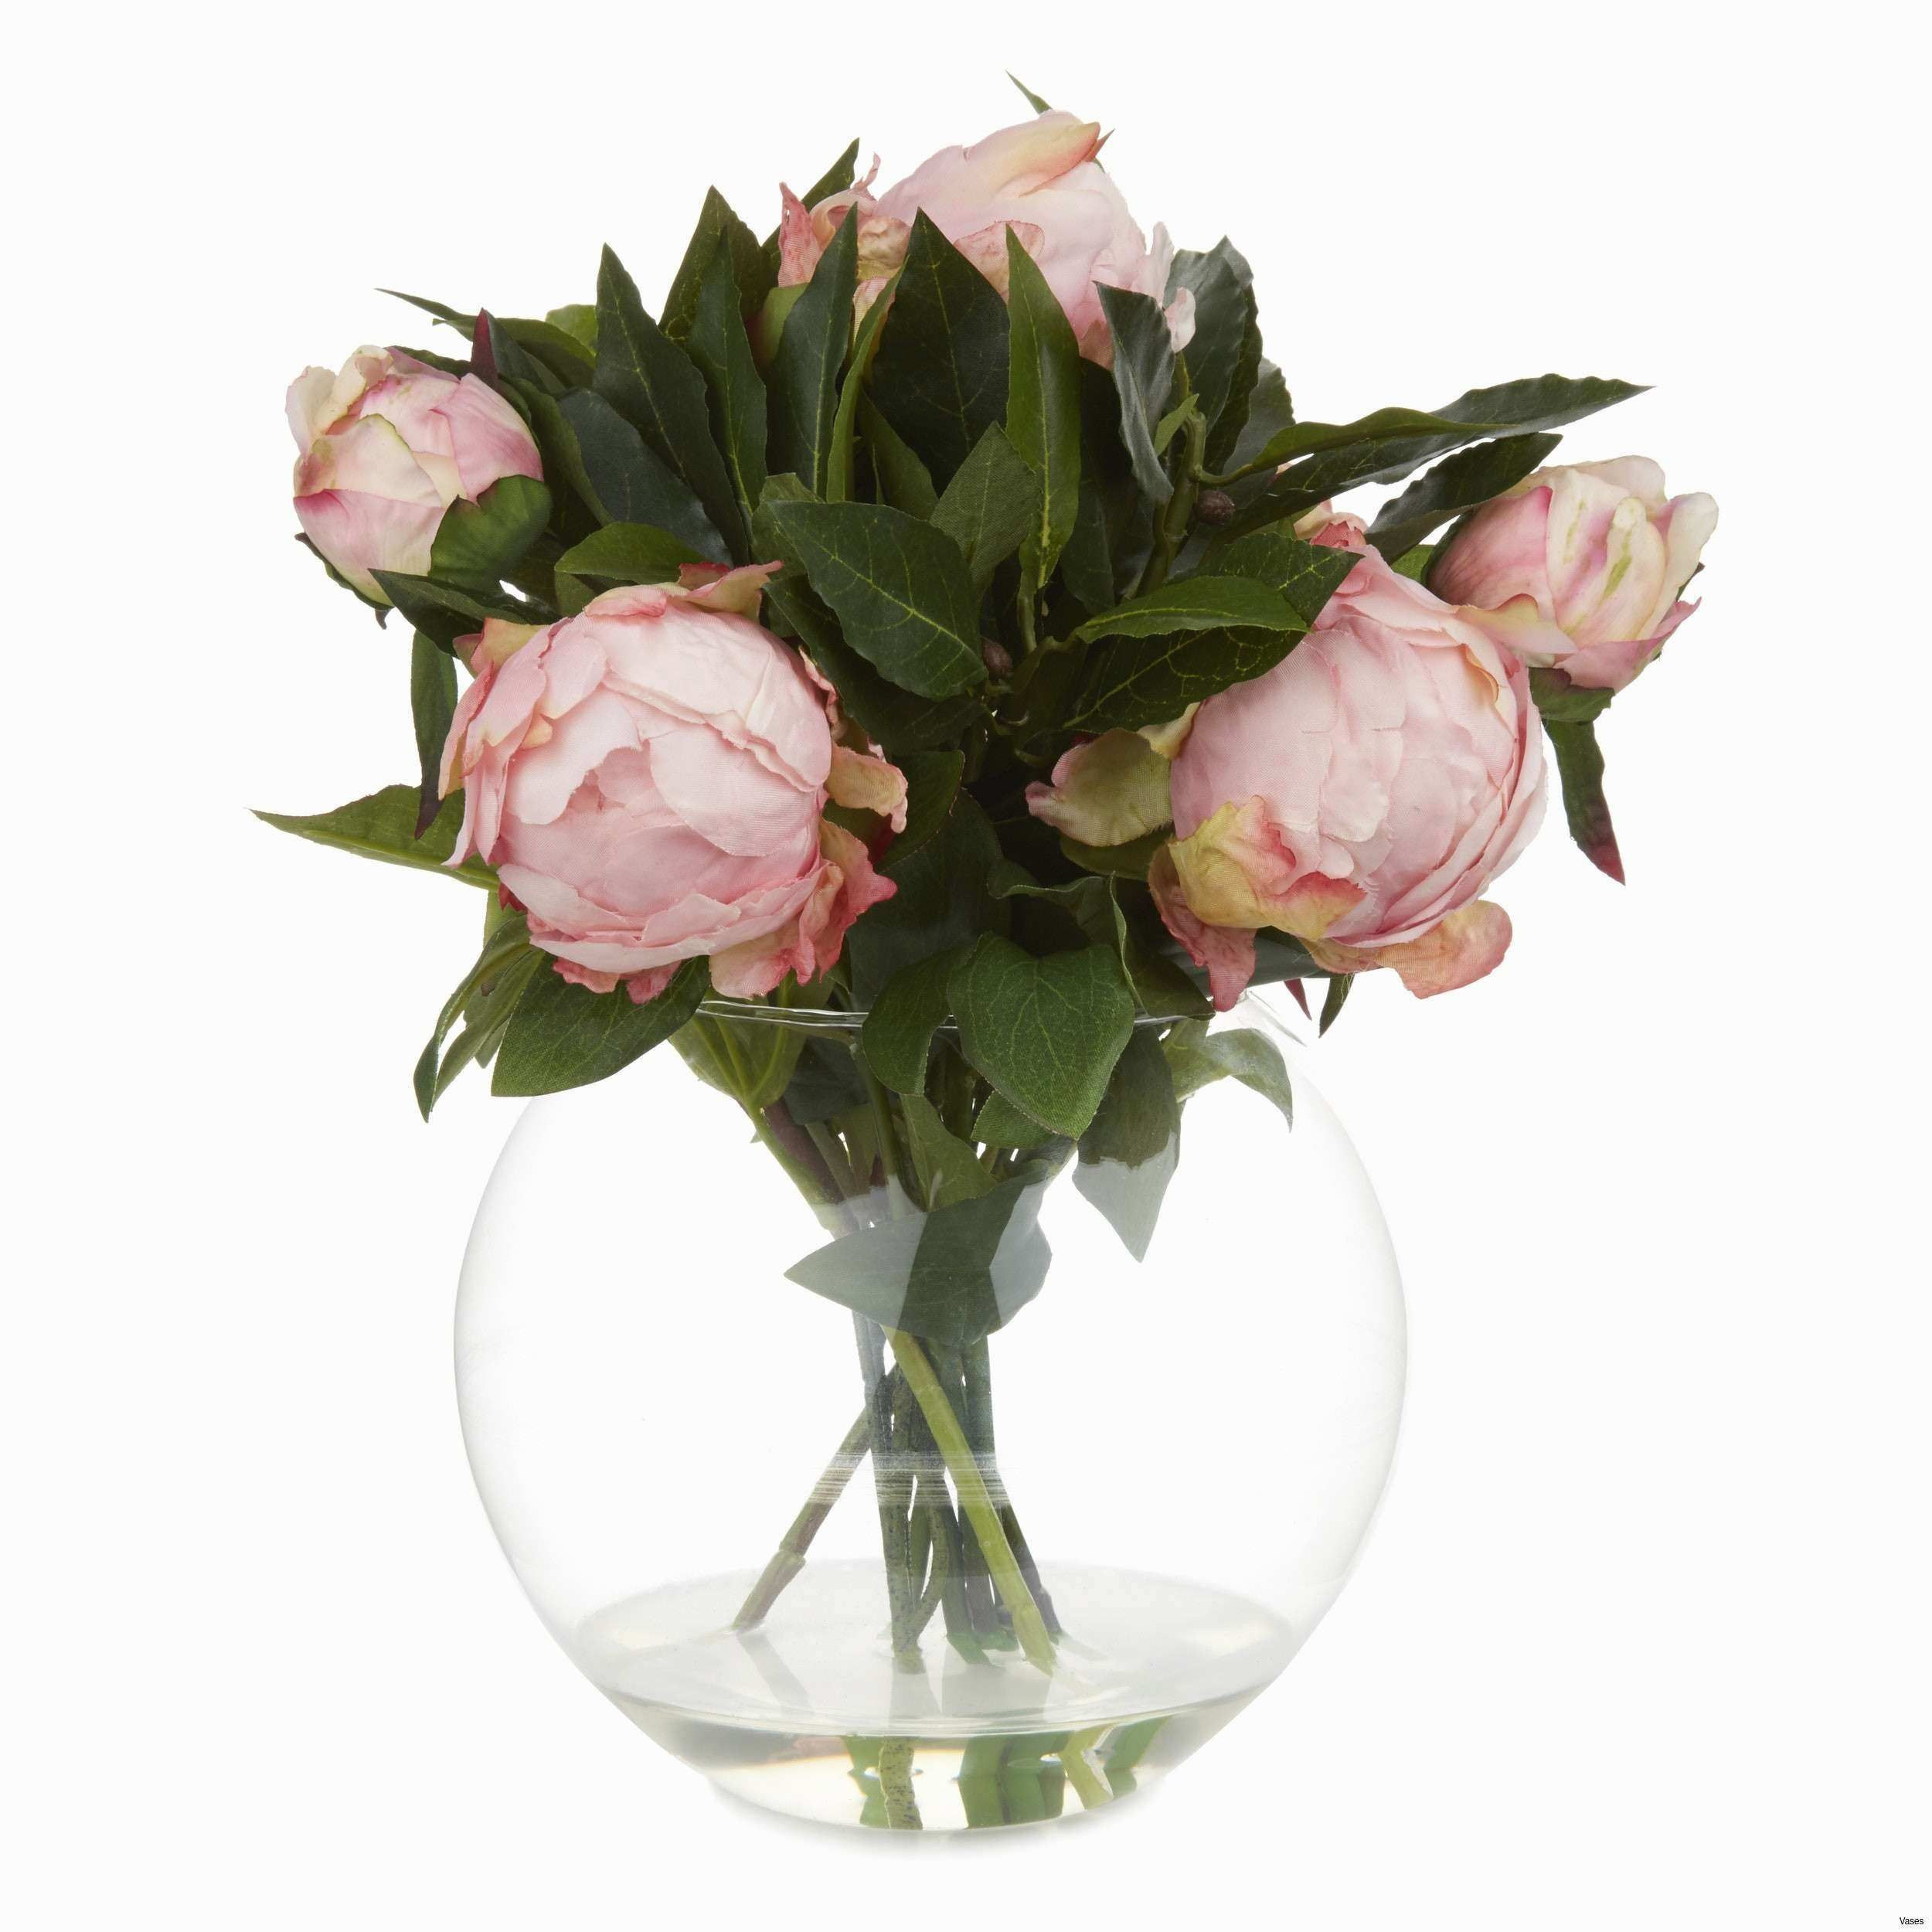 Flute Vases for Sale Of 50 Glass Pedestal Vase the Weekly World Pertaining to Glass Pedestal Vase Elegant 37 Wonderful Church Flowers Pedestal Arrangements Of Glass Pedestal Vase